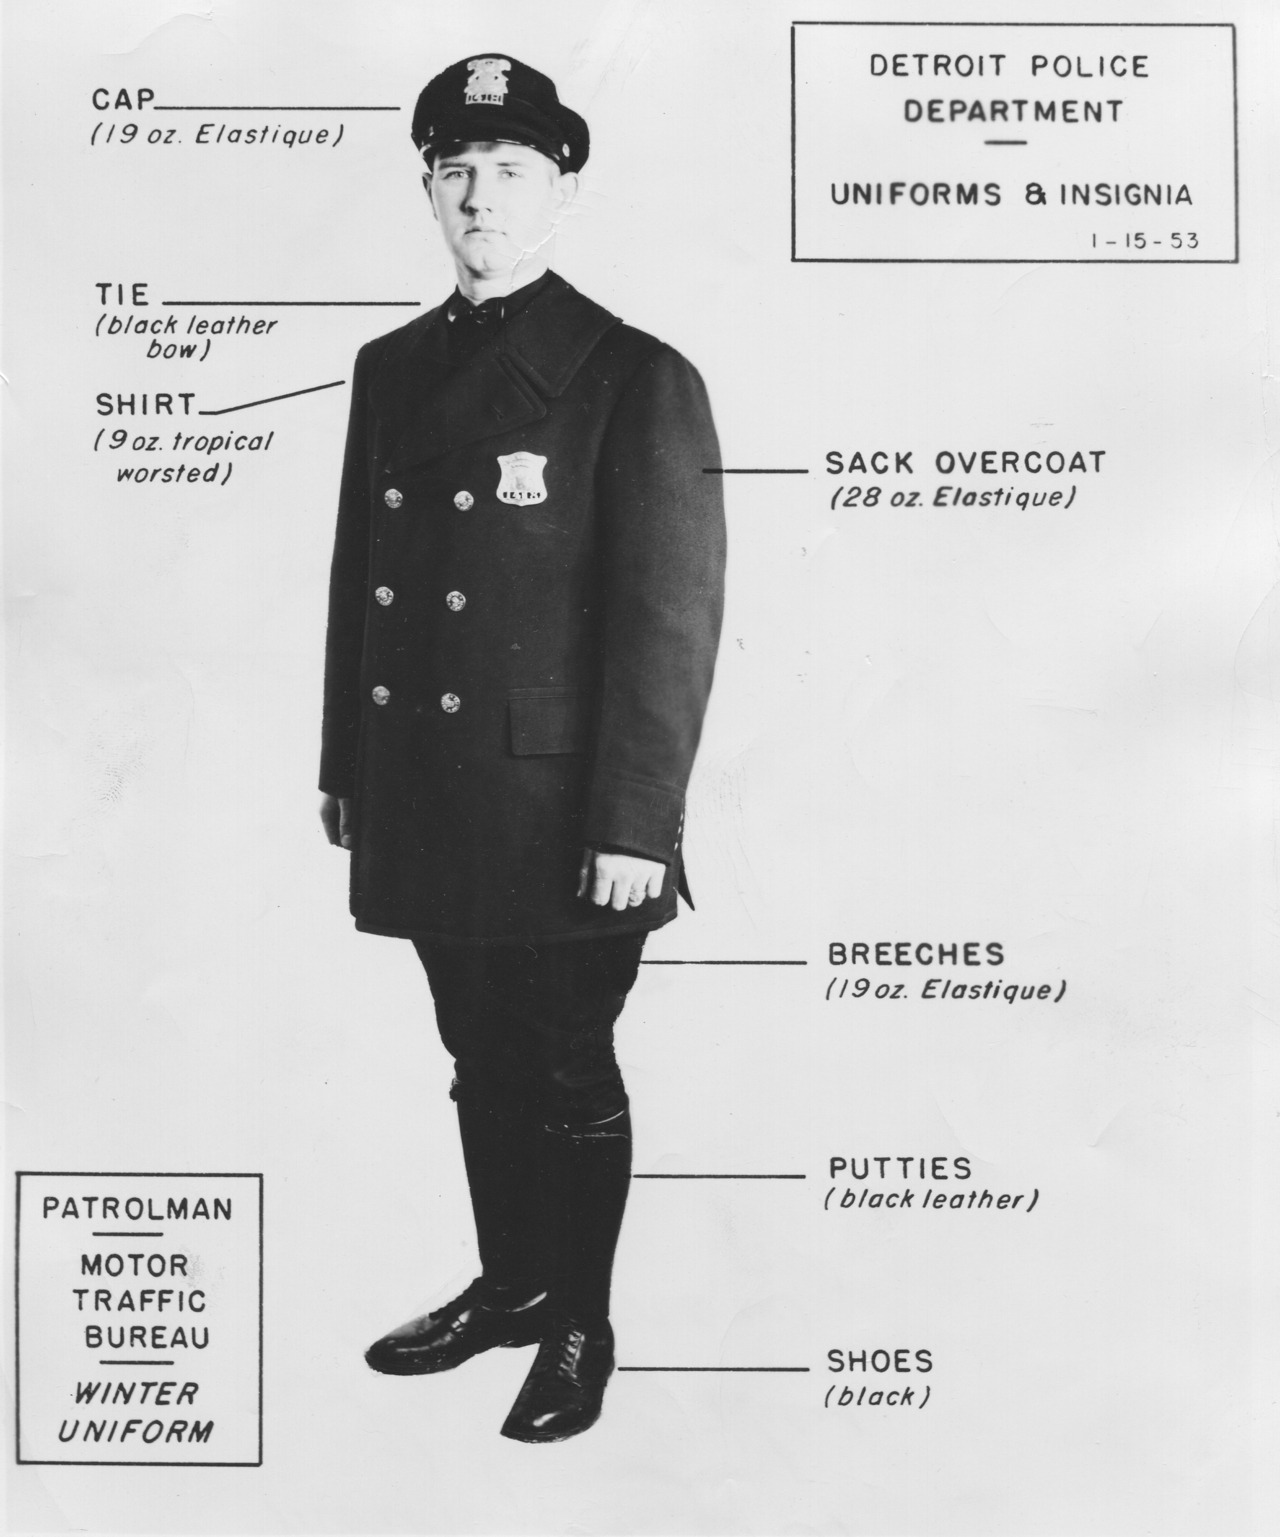 Detroit Police Uniforms March 12 1954, The Detroit News